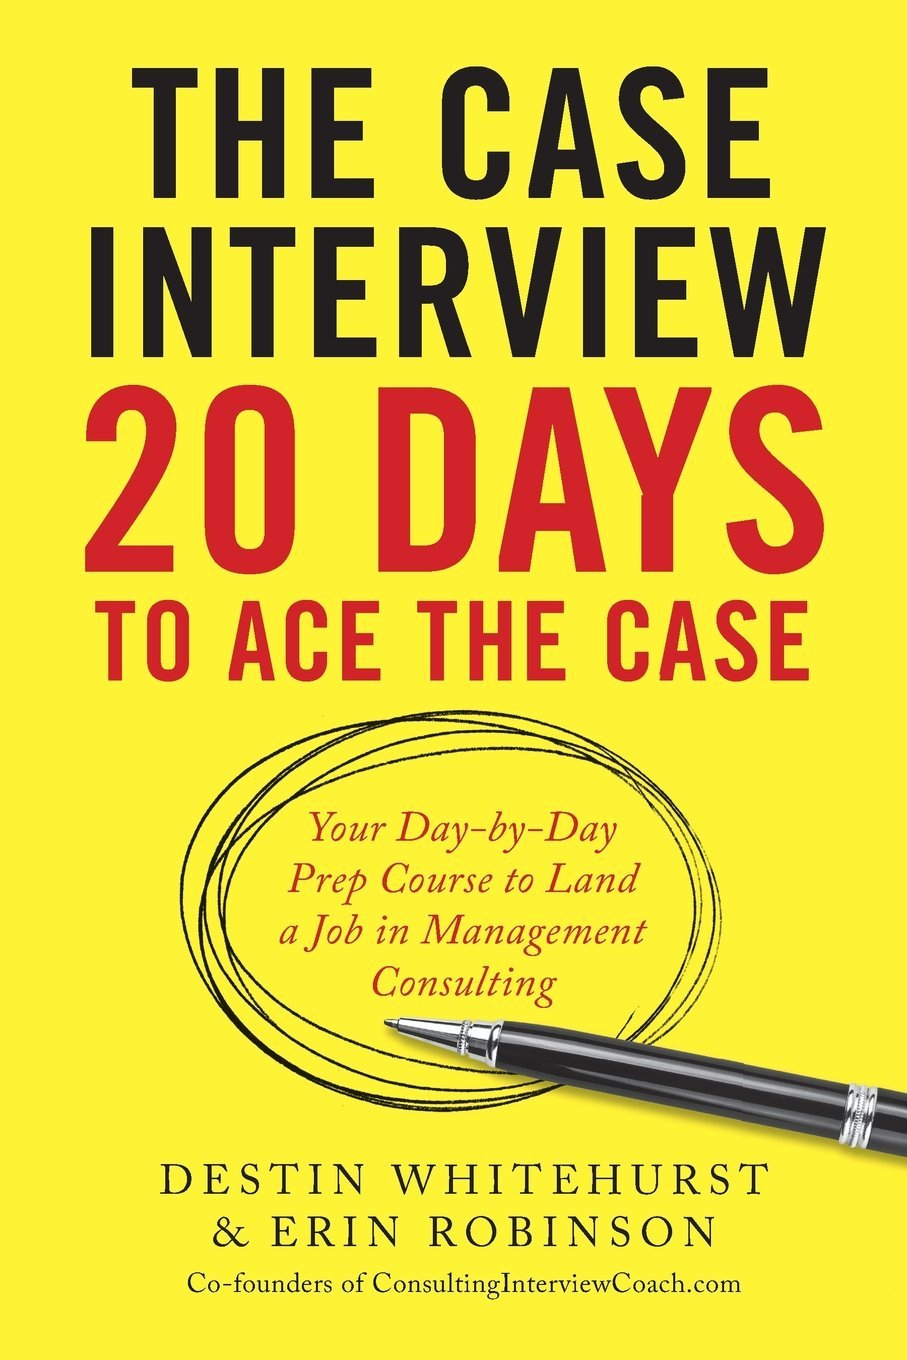 the case interview 20 days to ace the case your day by day prep the case interview 20 days to ace the case your day by day prep course to land a job in management consulting destin whitehurst erin robinson